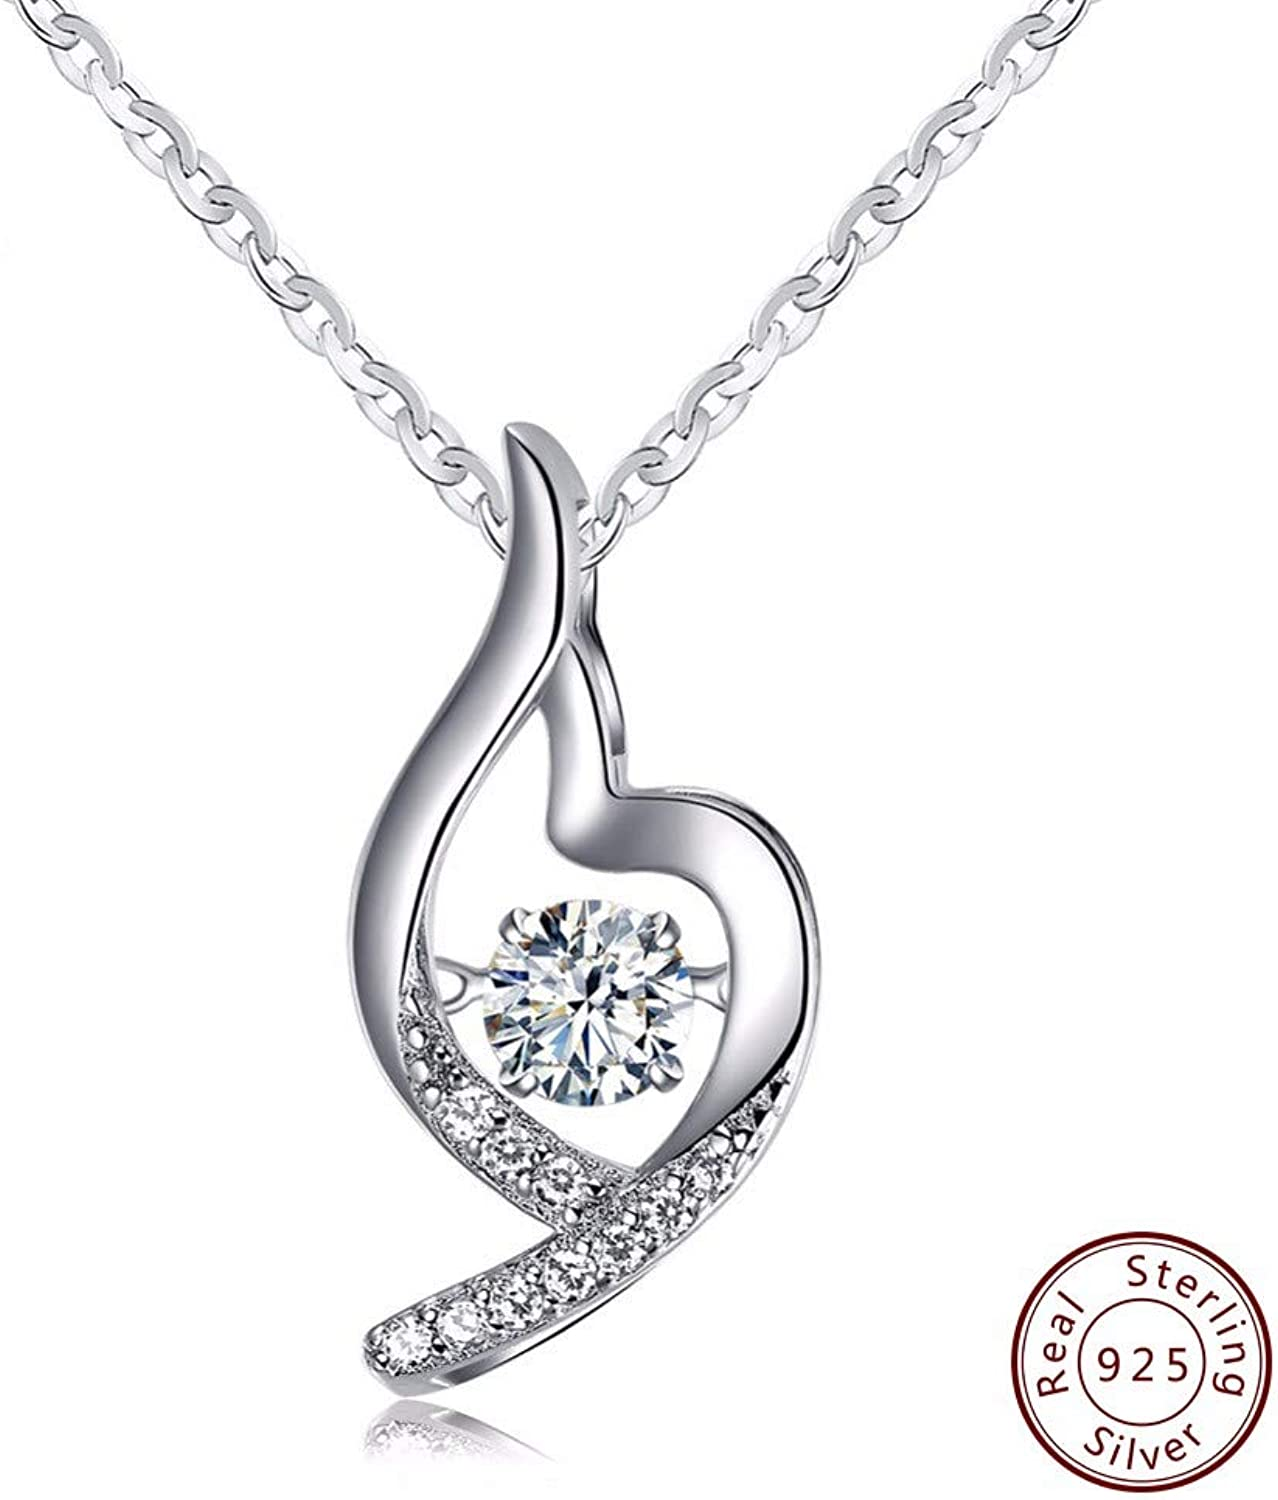 QMM necklace Pendant Sterling Silver 925 Pendants&Necklaces with Movable Crystal Leisure Jewelry for Women